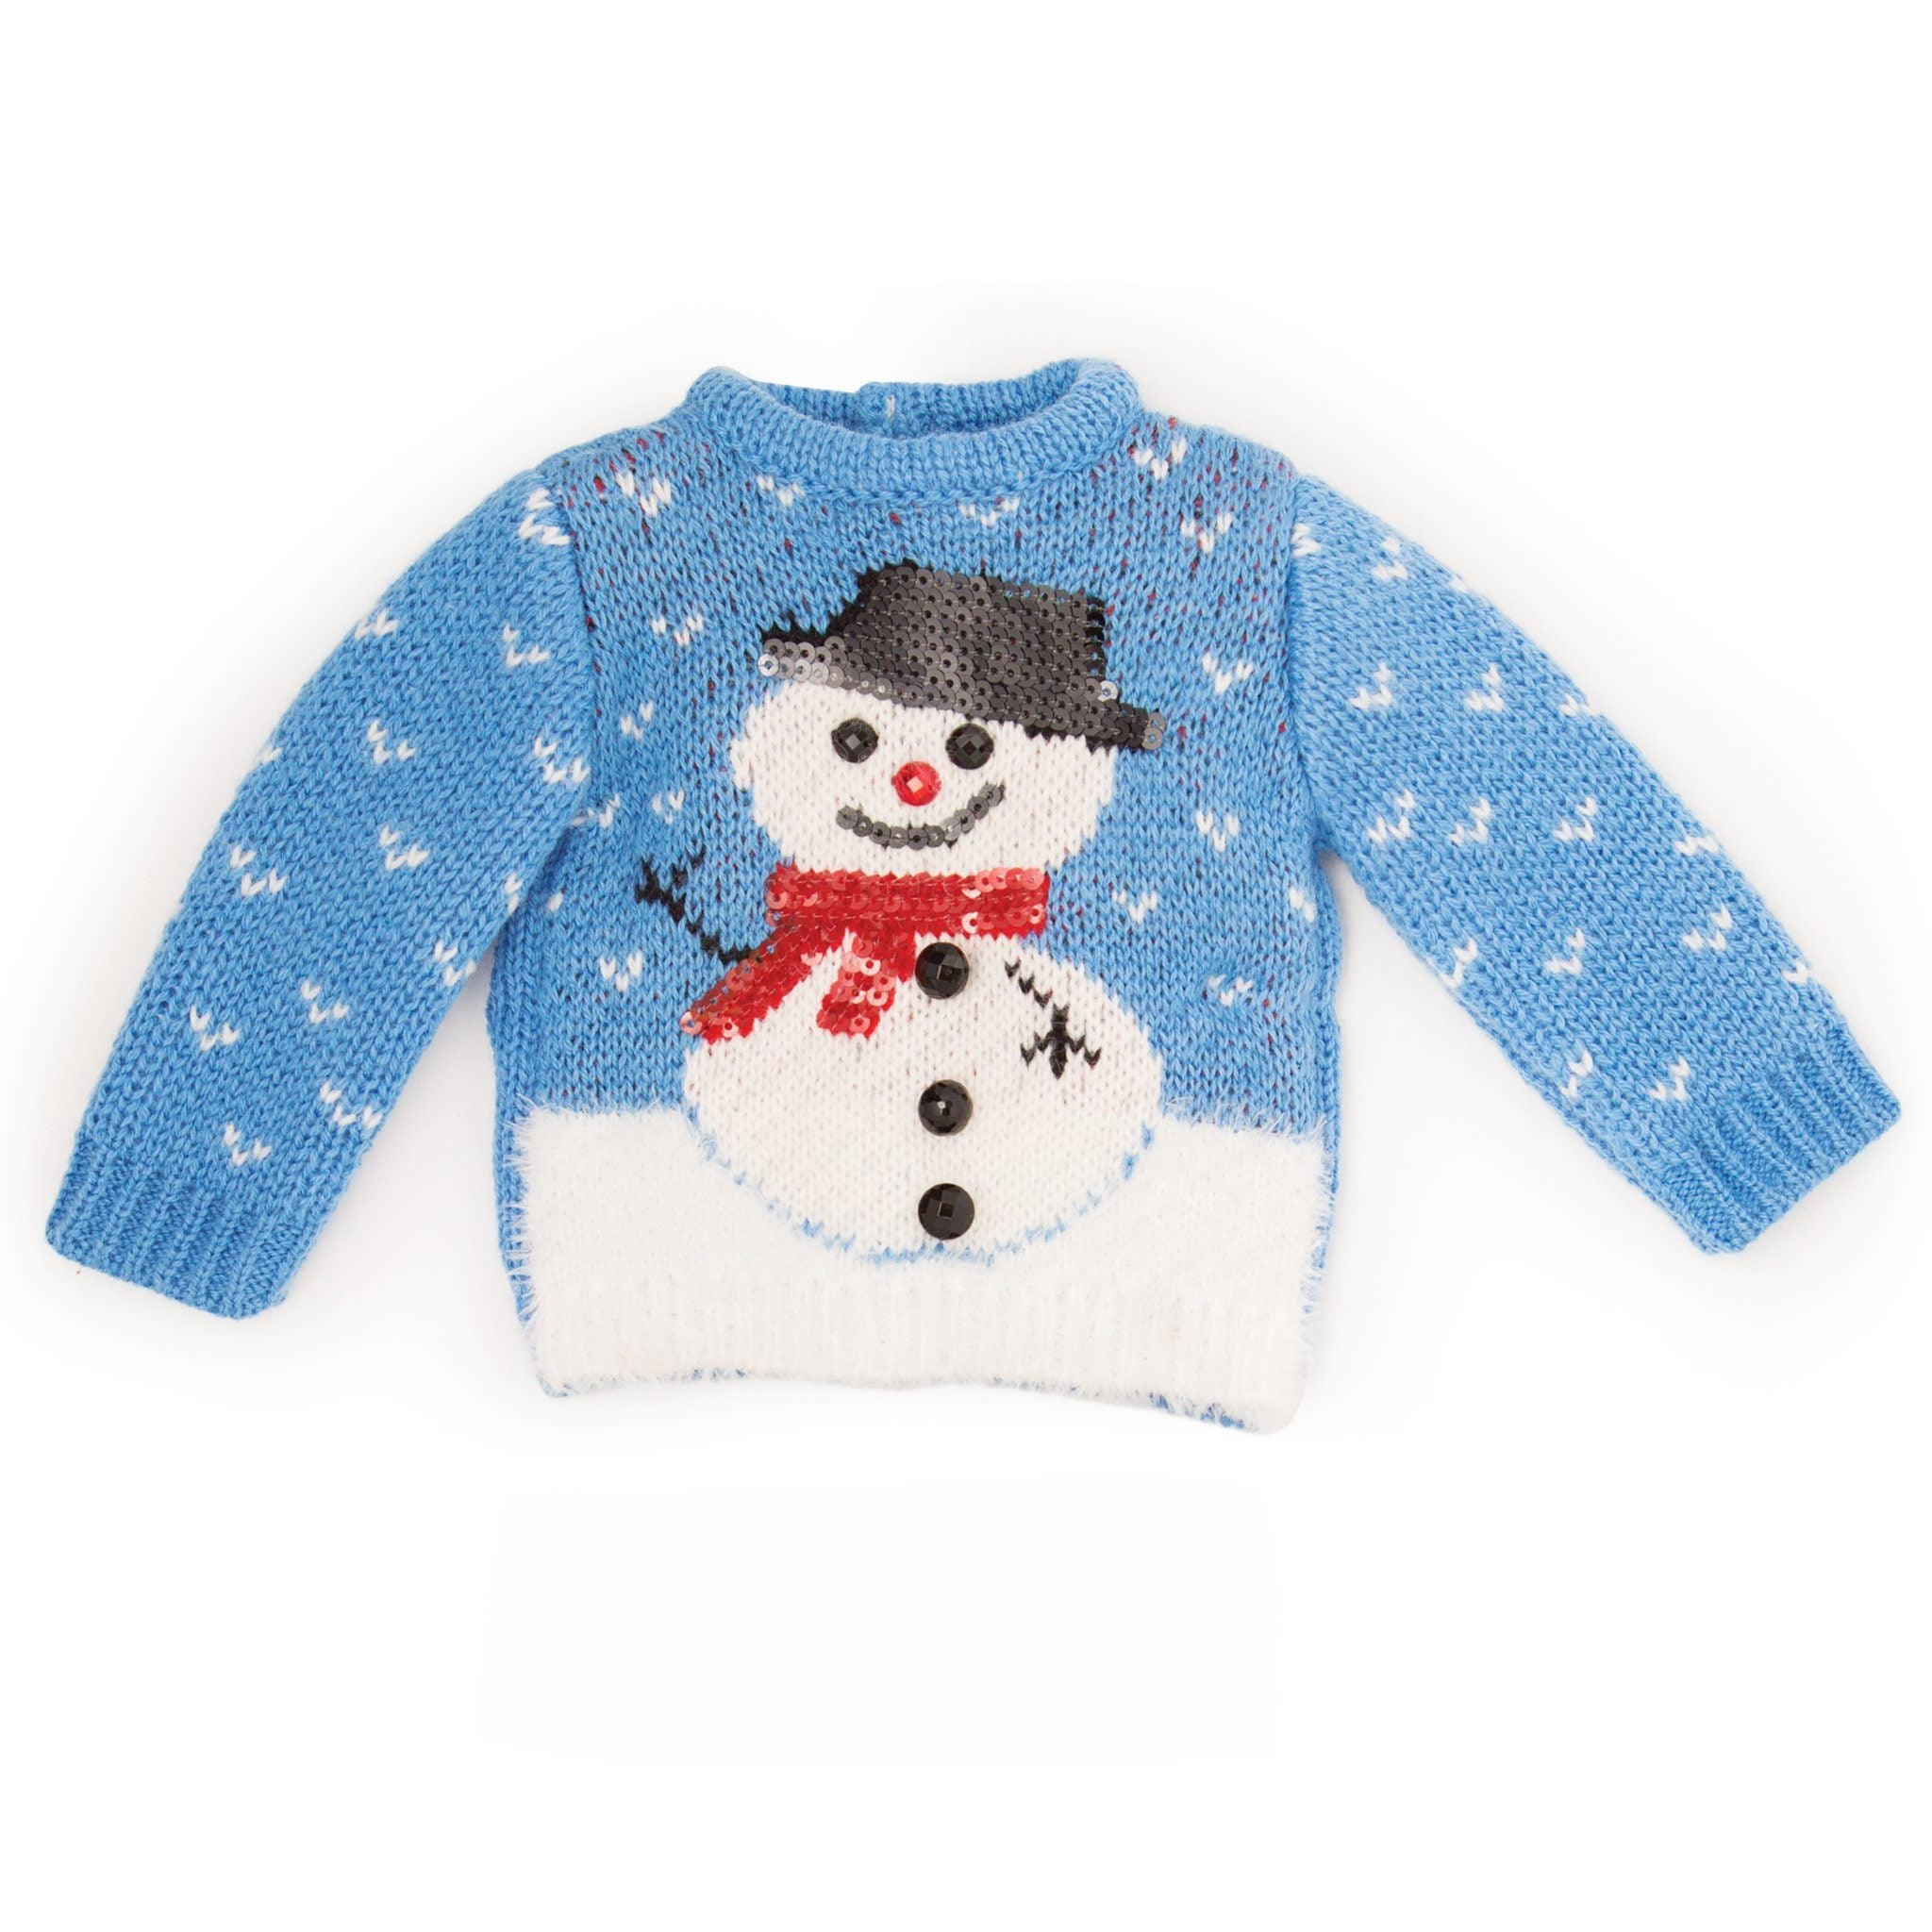 Snow Cute knit fuzzy blue sweater sequin and bead details on a snowman fits all 18 inch dolls.